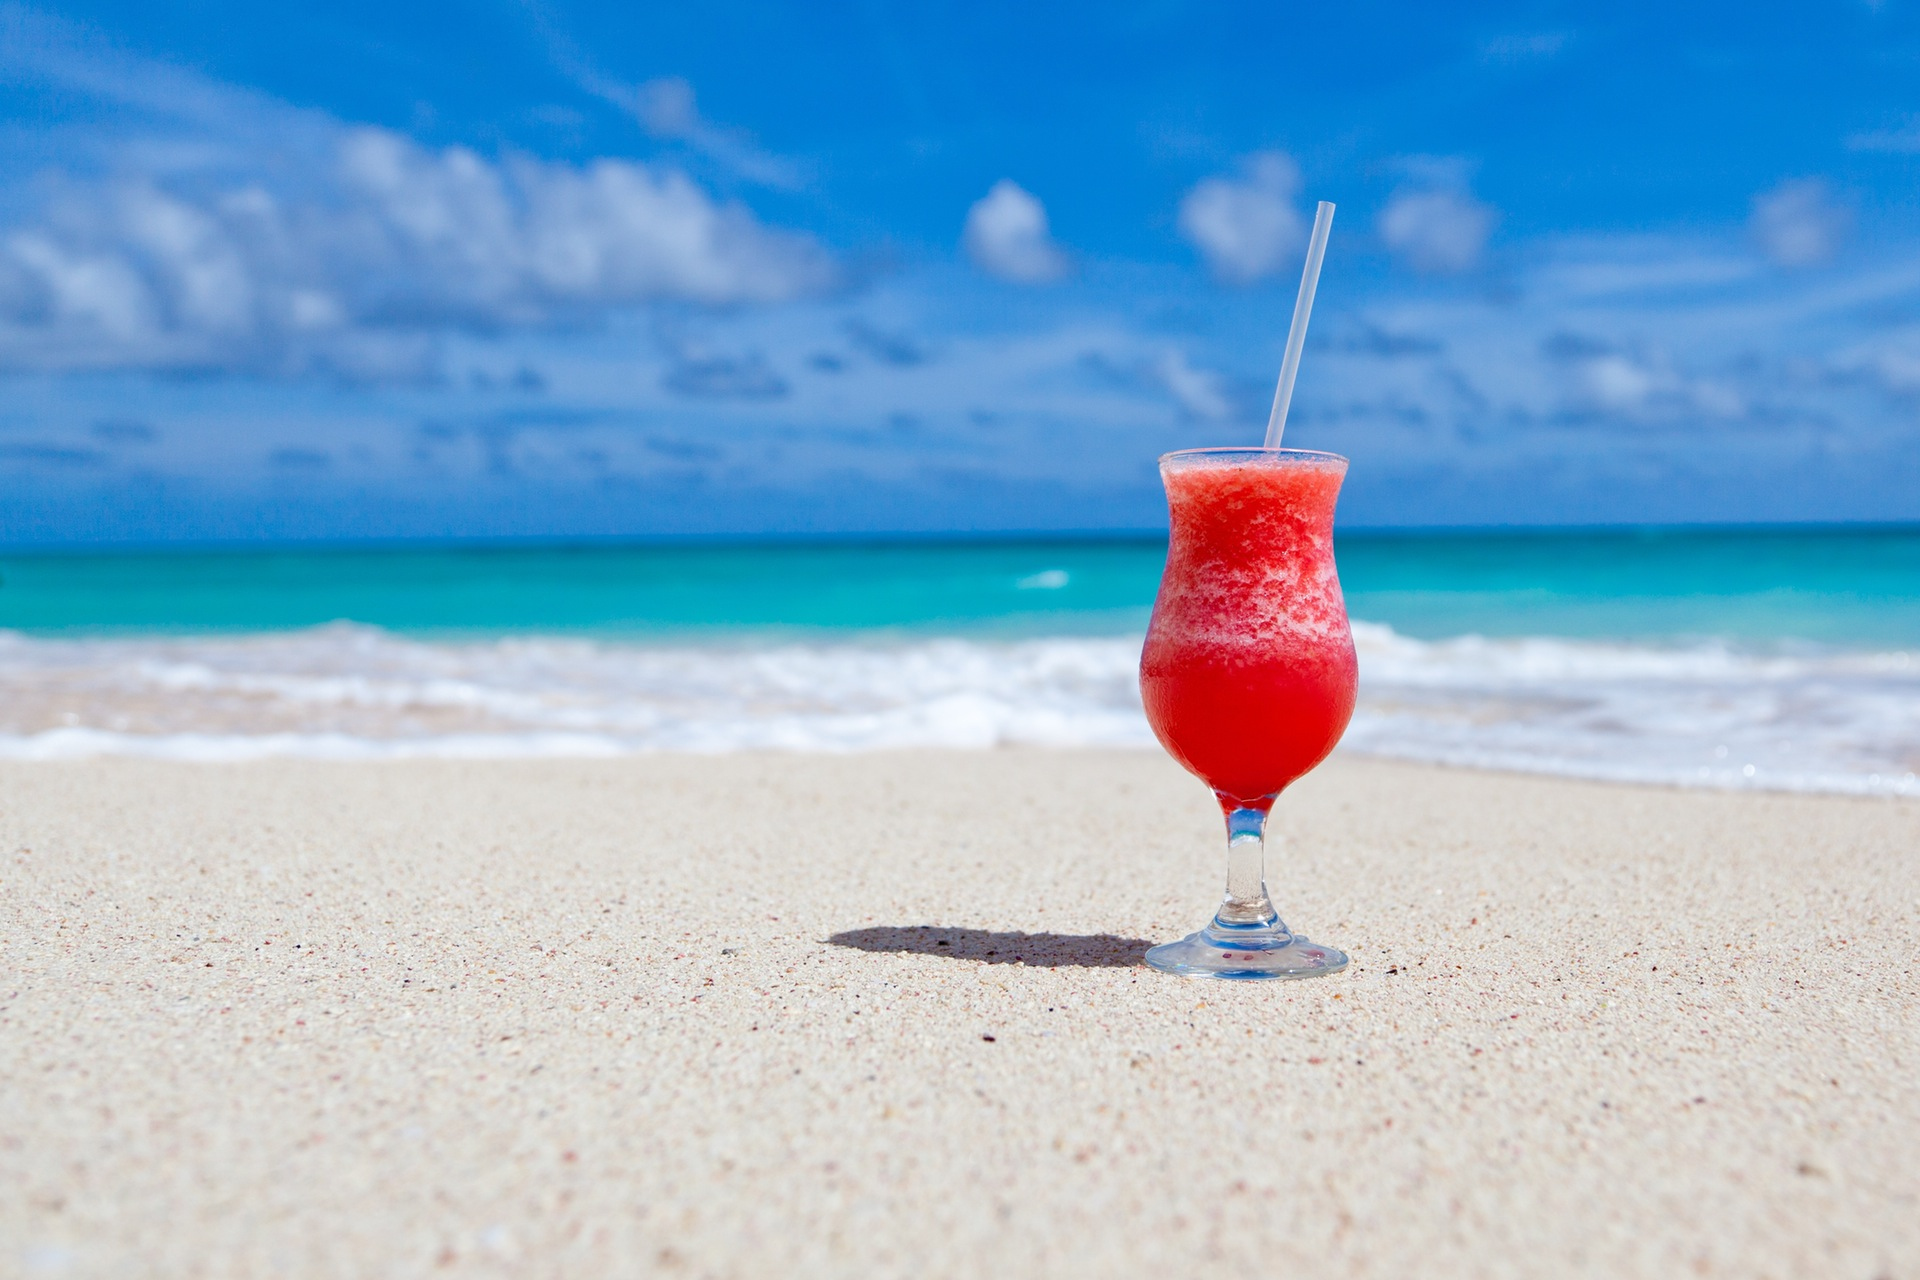 Cocktail, Strand, trinken, Sand, Meer - Wallpaper HD - Prof.-falken.com